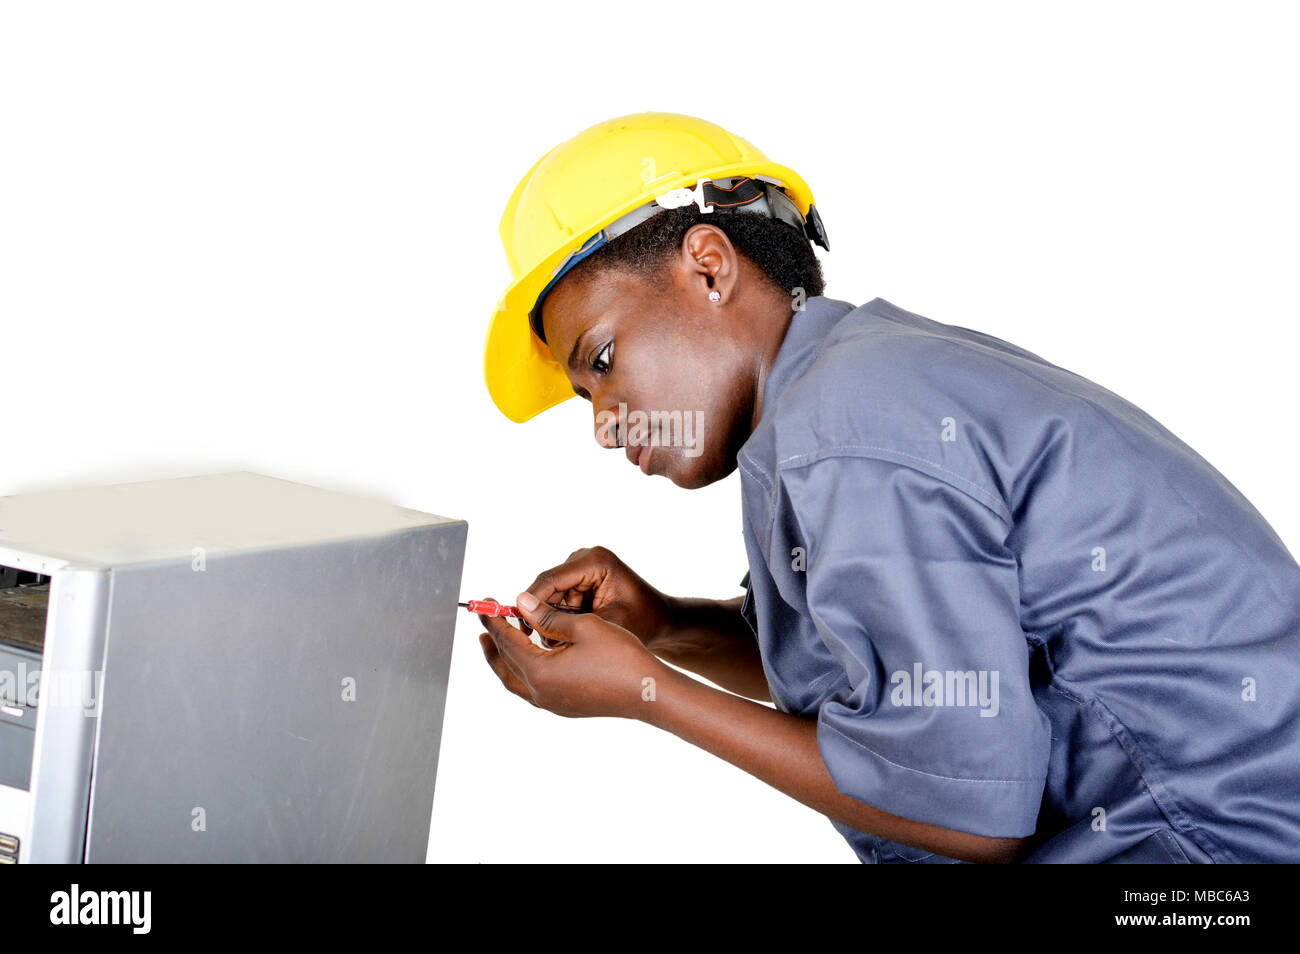 Young woman does the maintenance of a computer by disassembling it with a turn vice - Stock Image